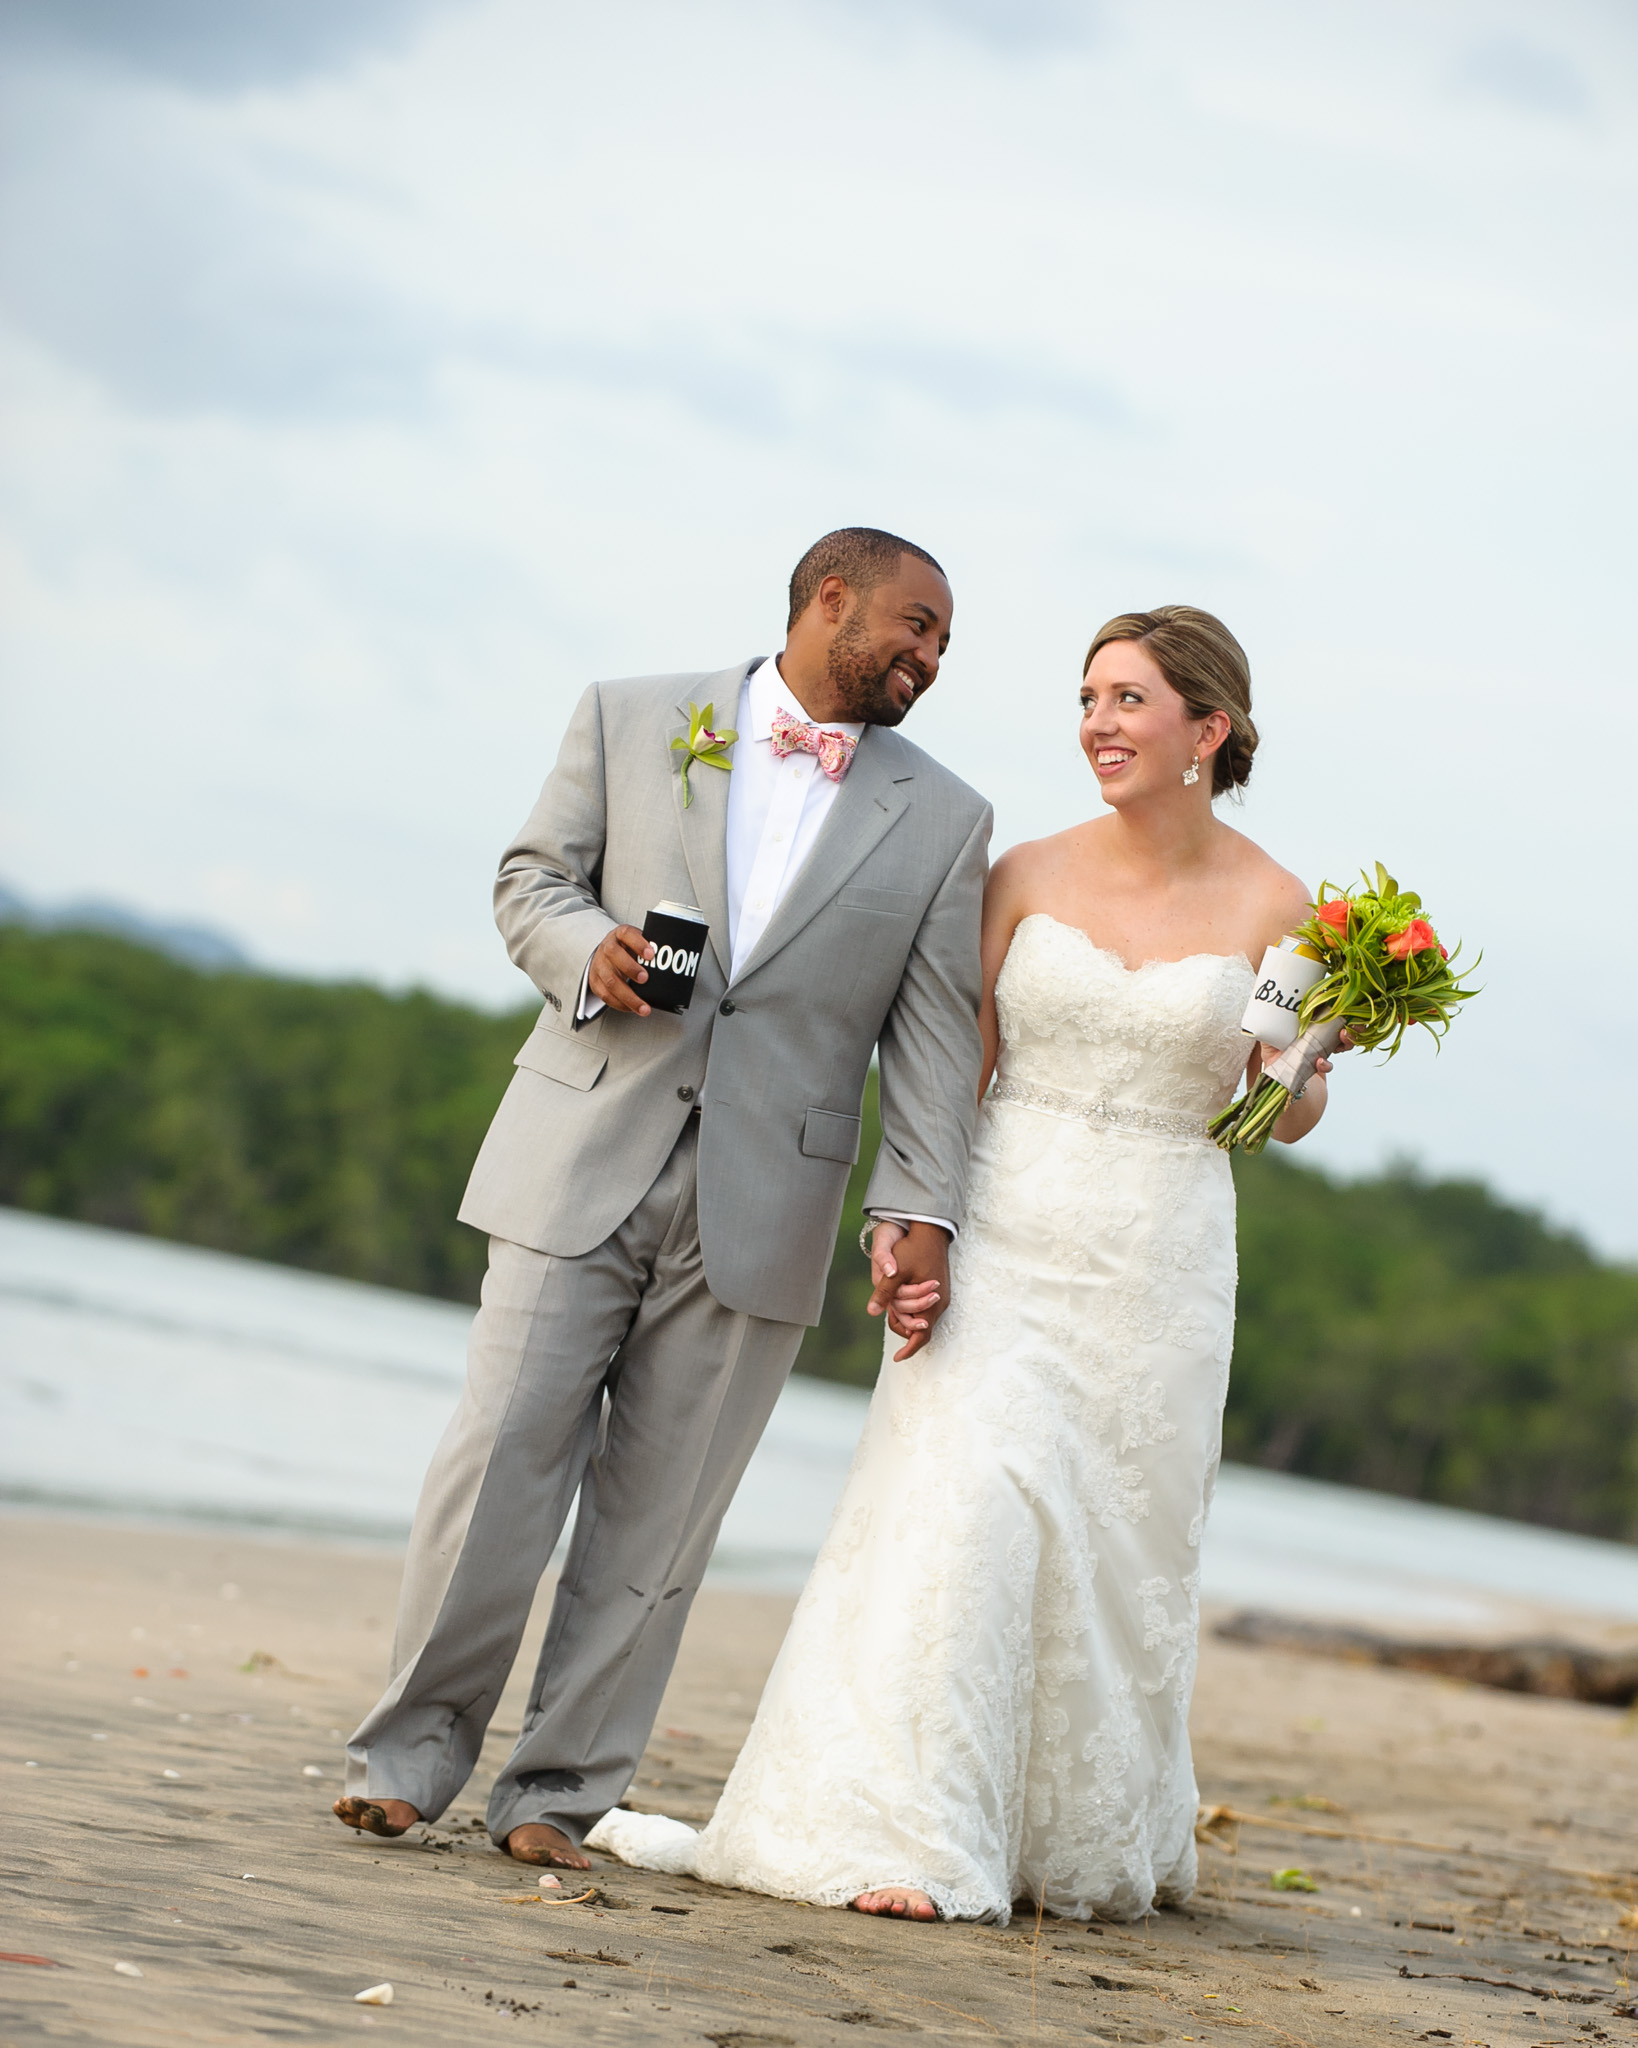 Planning a small wedding in CR